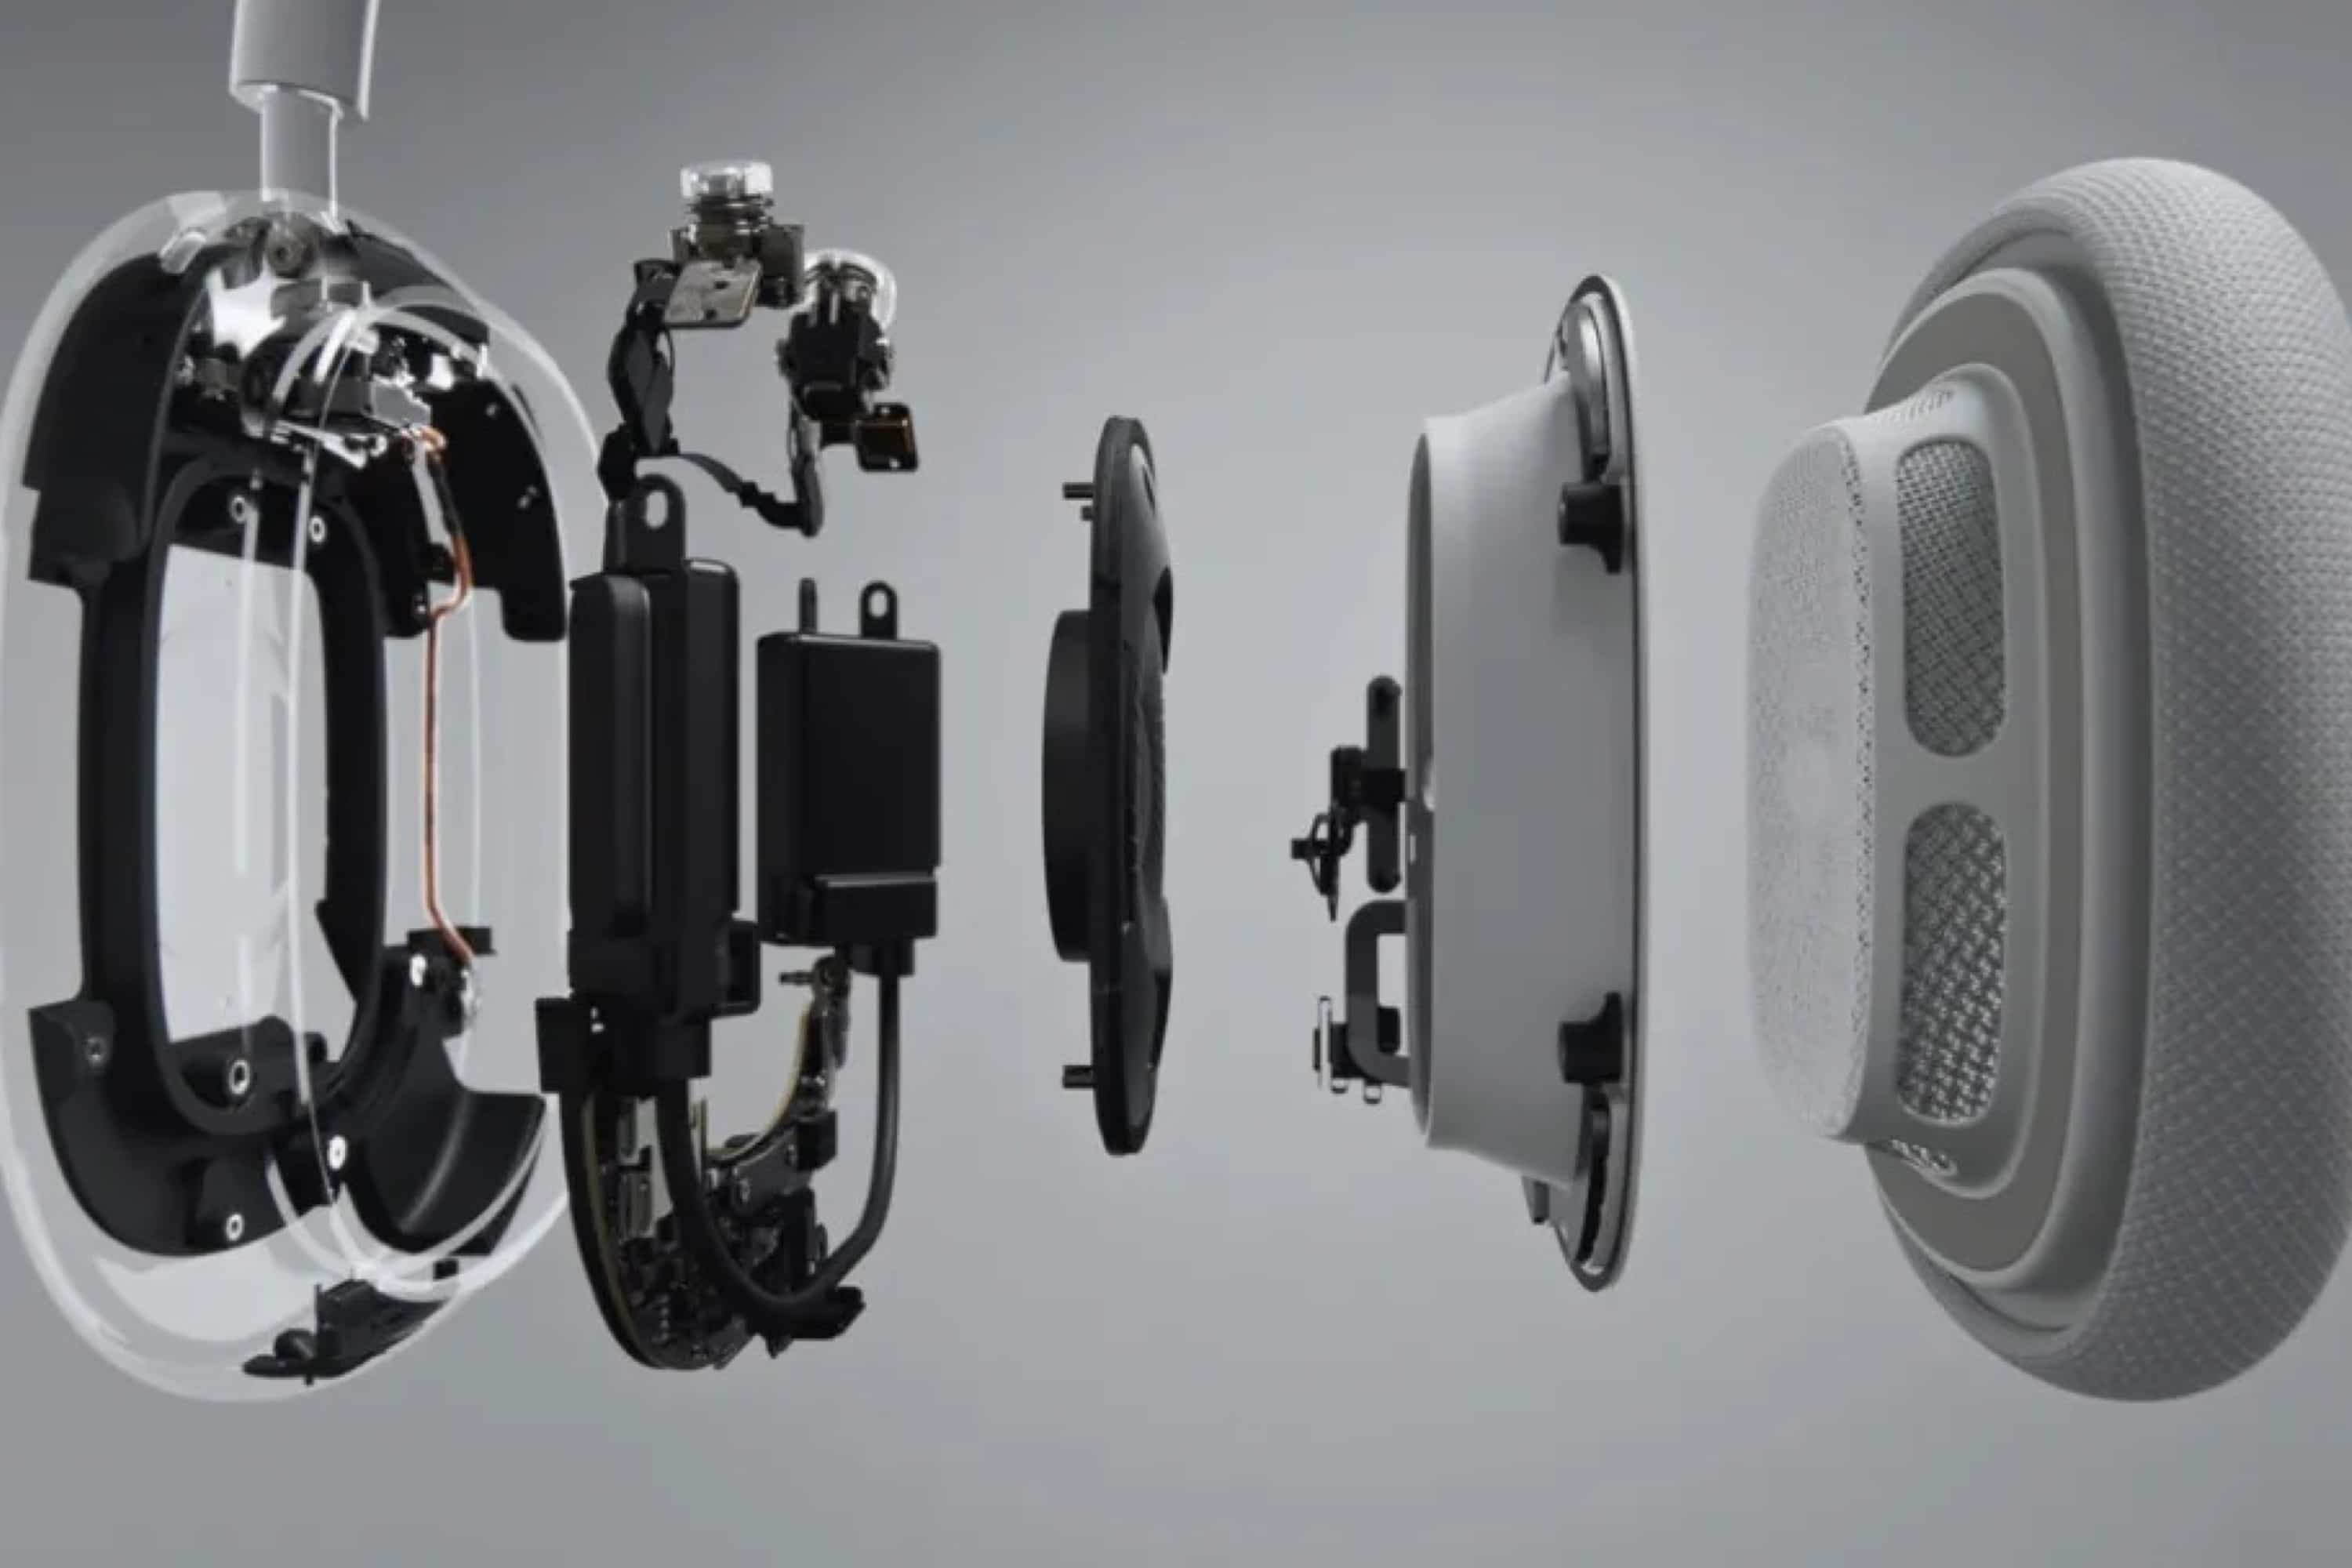 airpods-max-apple-unveils-mighty-new-headphones-20201208-1